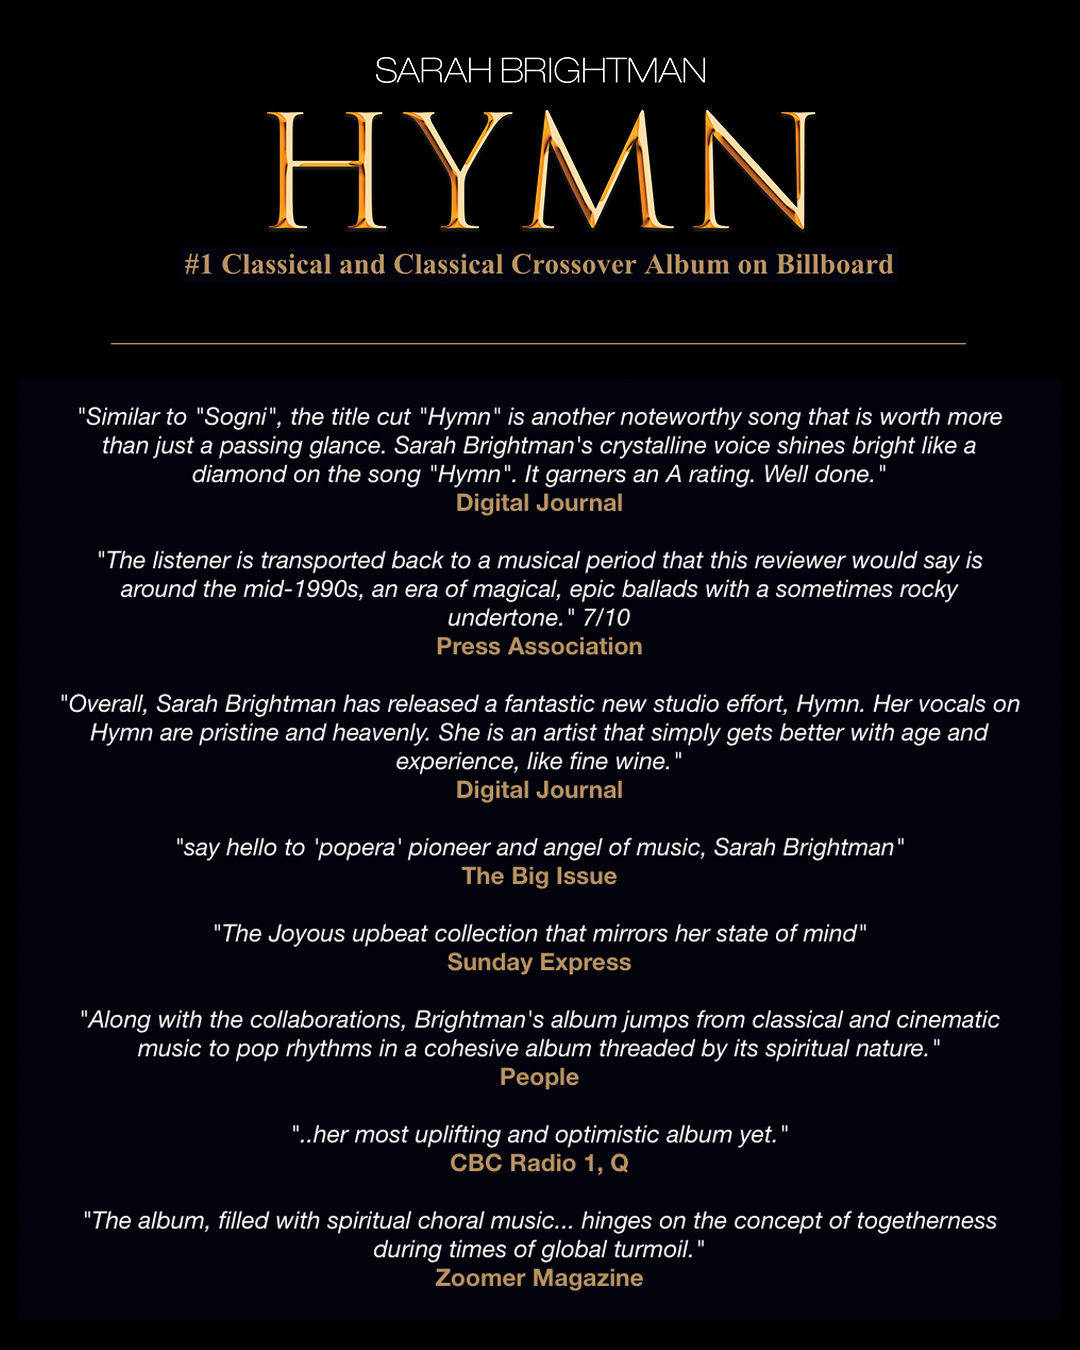 HYMN is the #1 Classical and Classical Crossover Album on Billboard